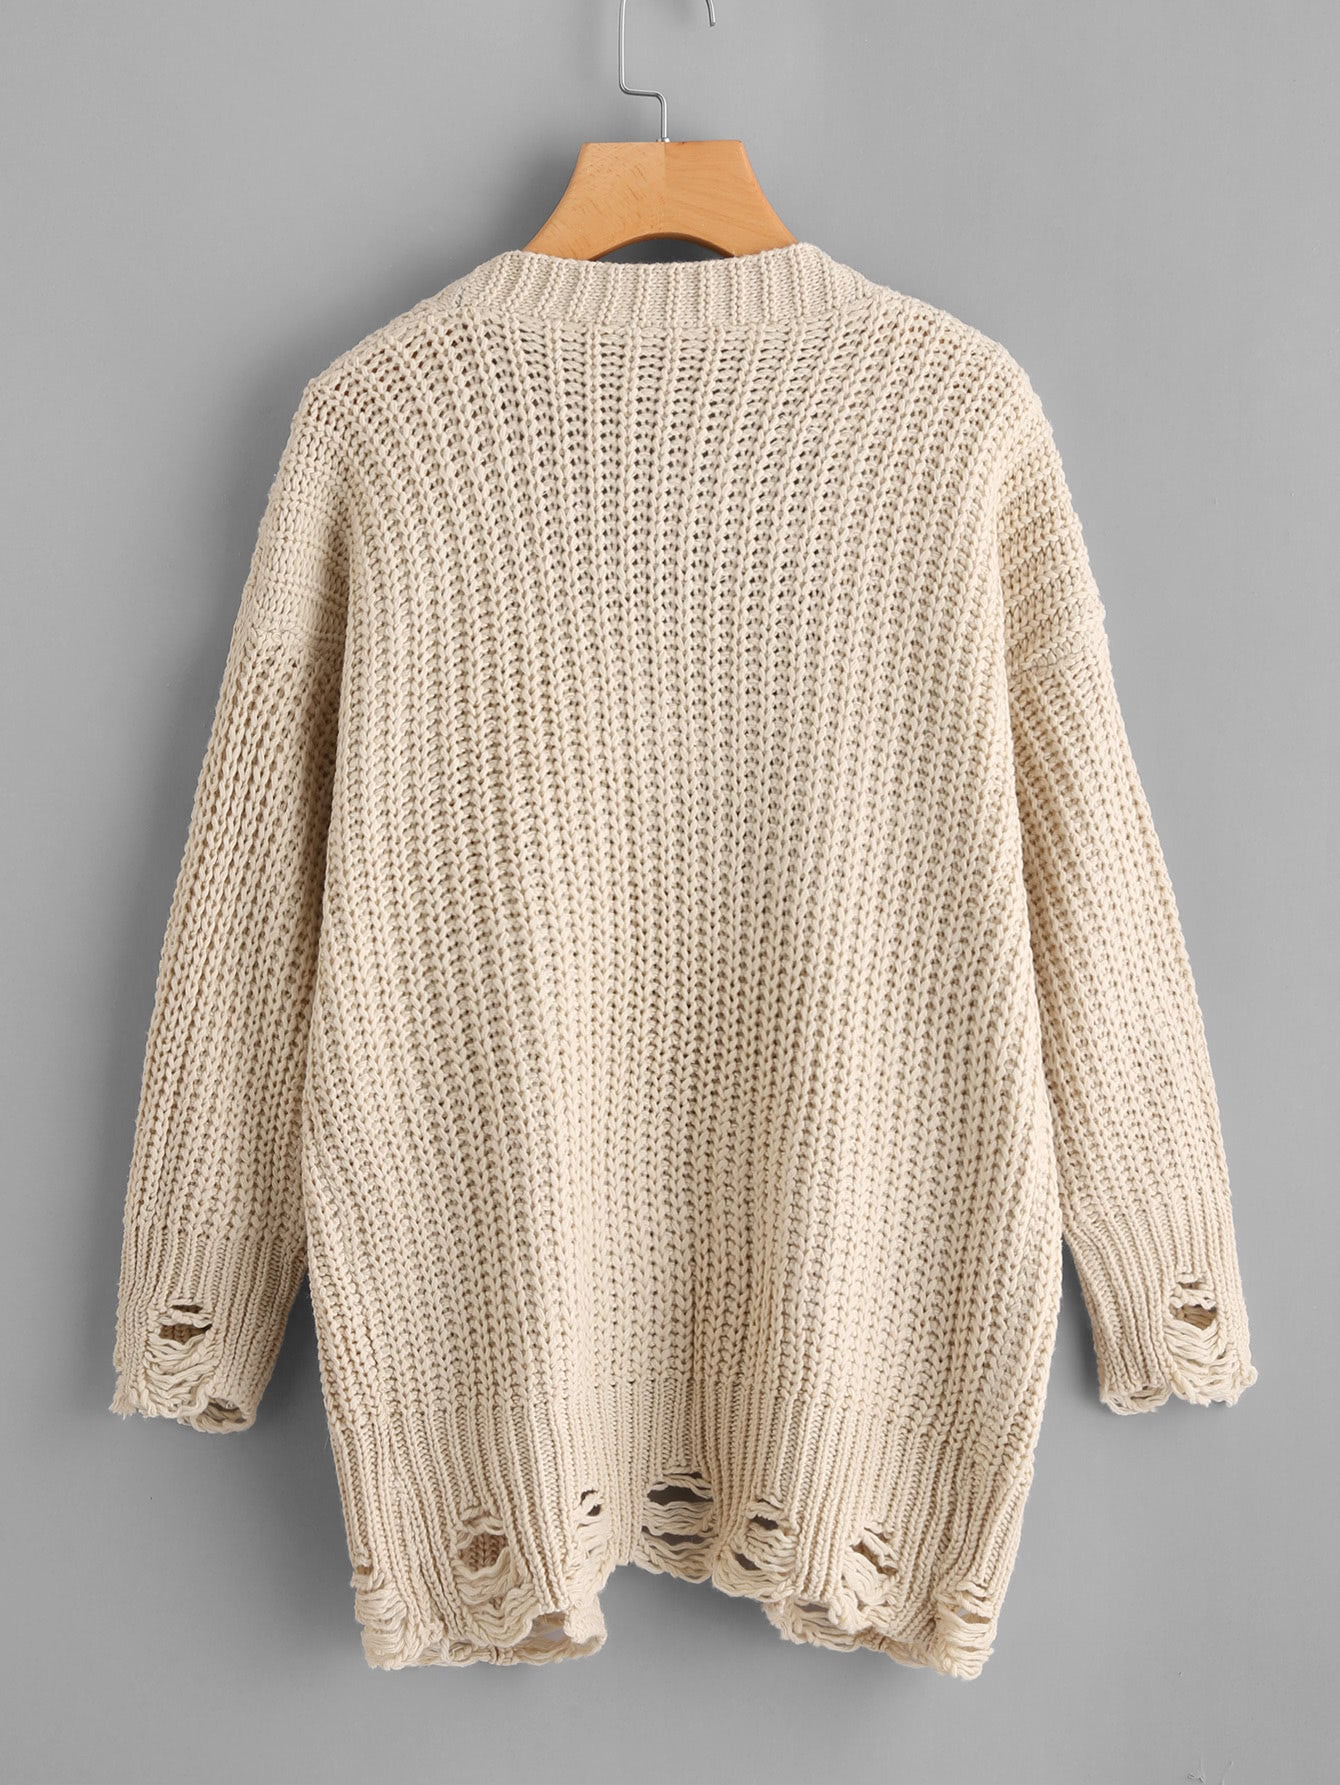 Apricot Open Front Ripped Trim Knit Cardigan Sweater